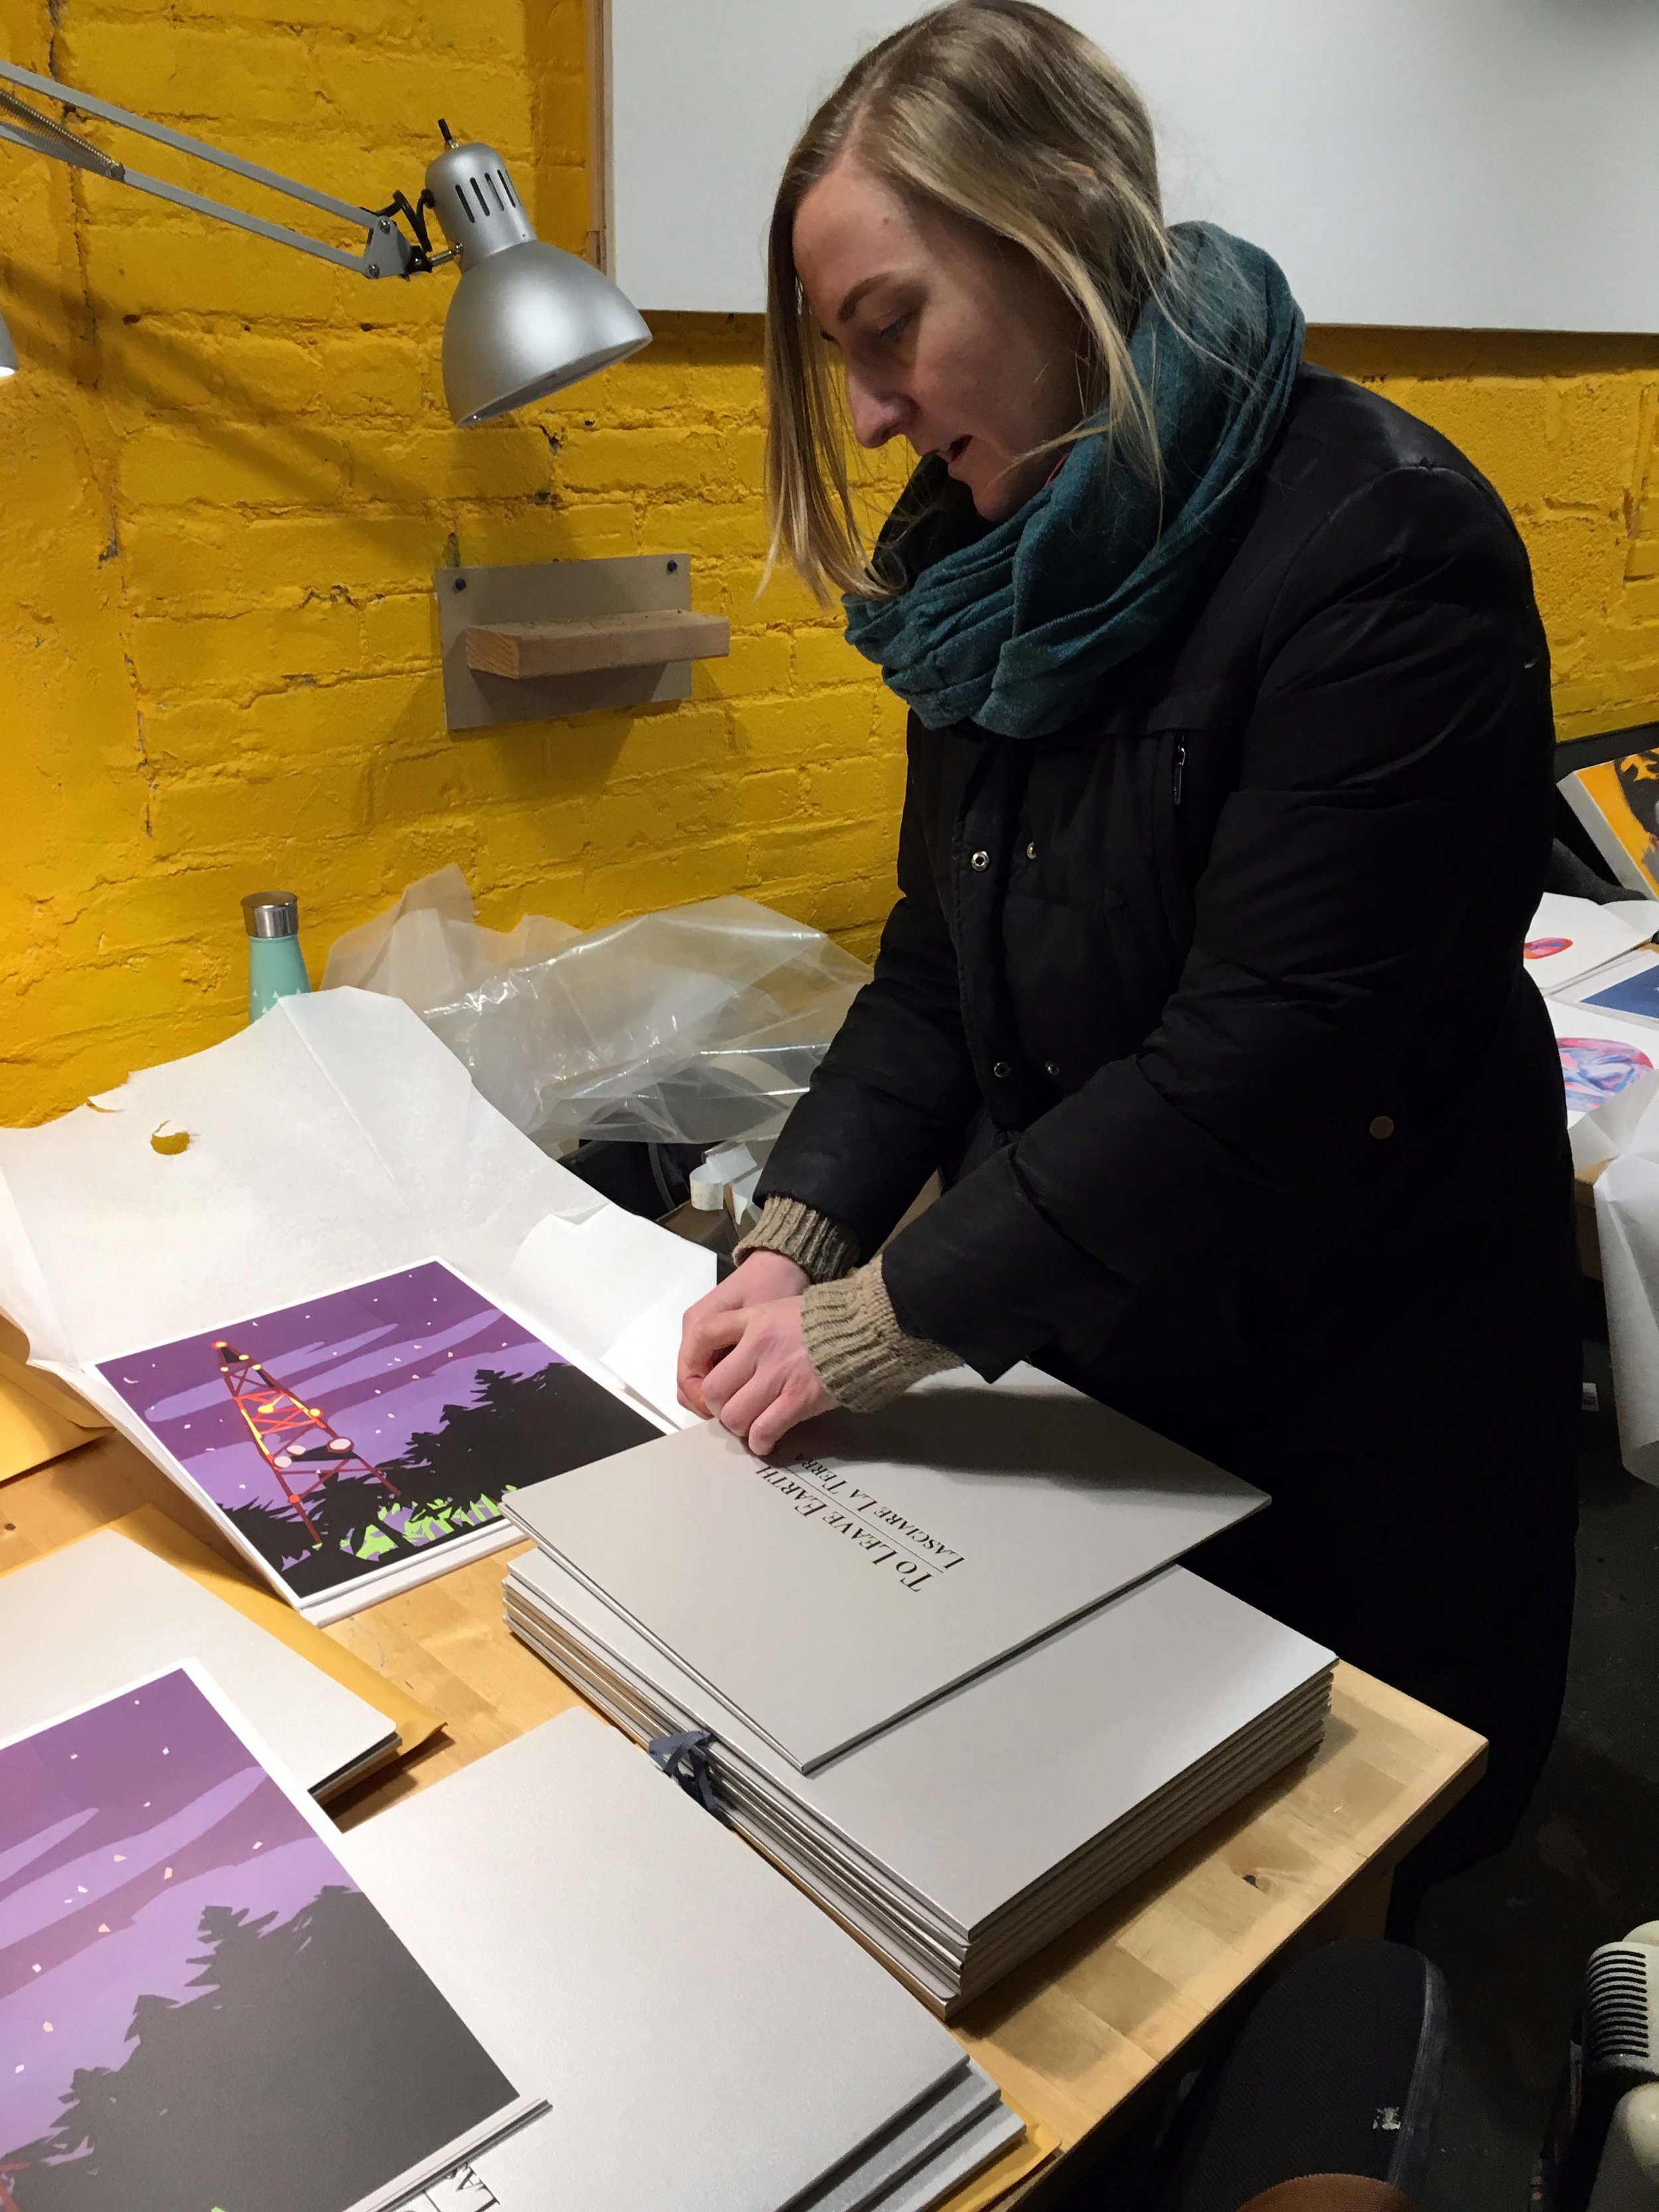 Master printer Kate Kosek preparing folios made by  Small Editions, Brooklyn